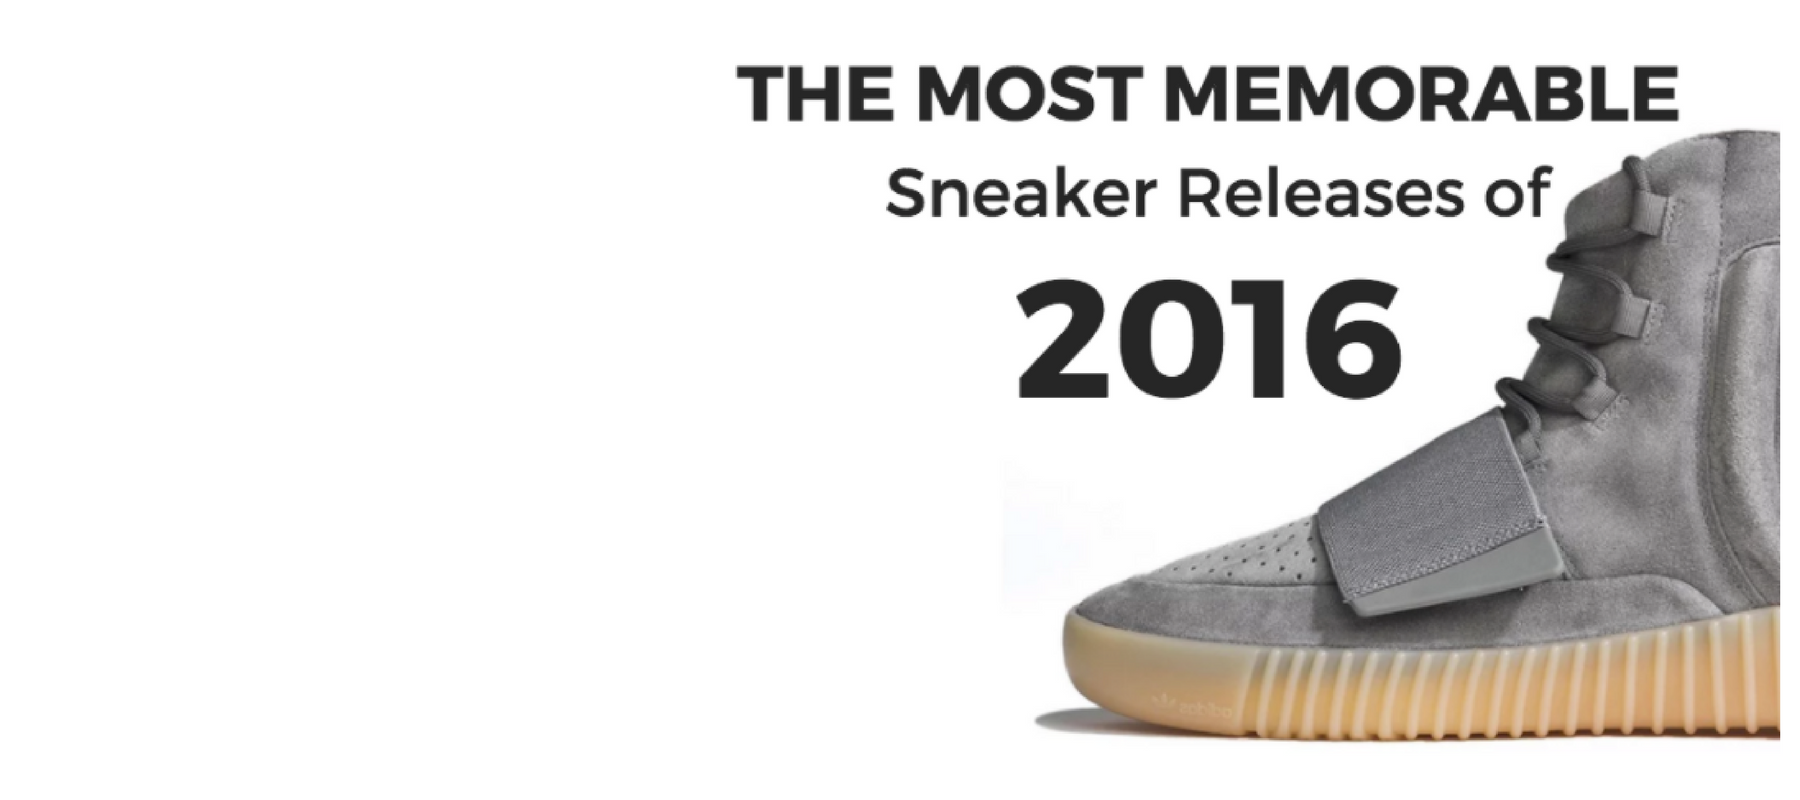 The Most Memorable Sneaker Releases of 2016